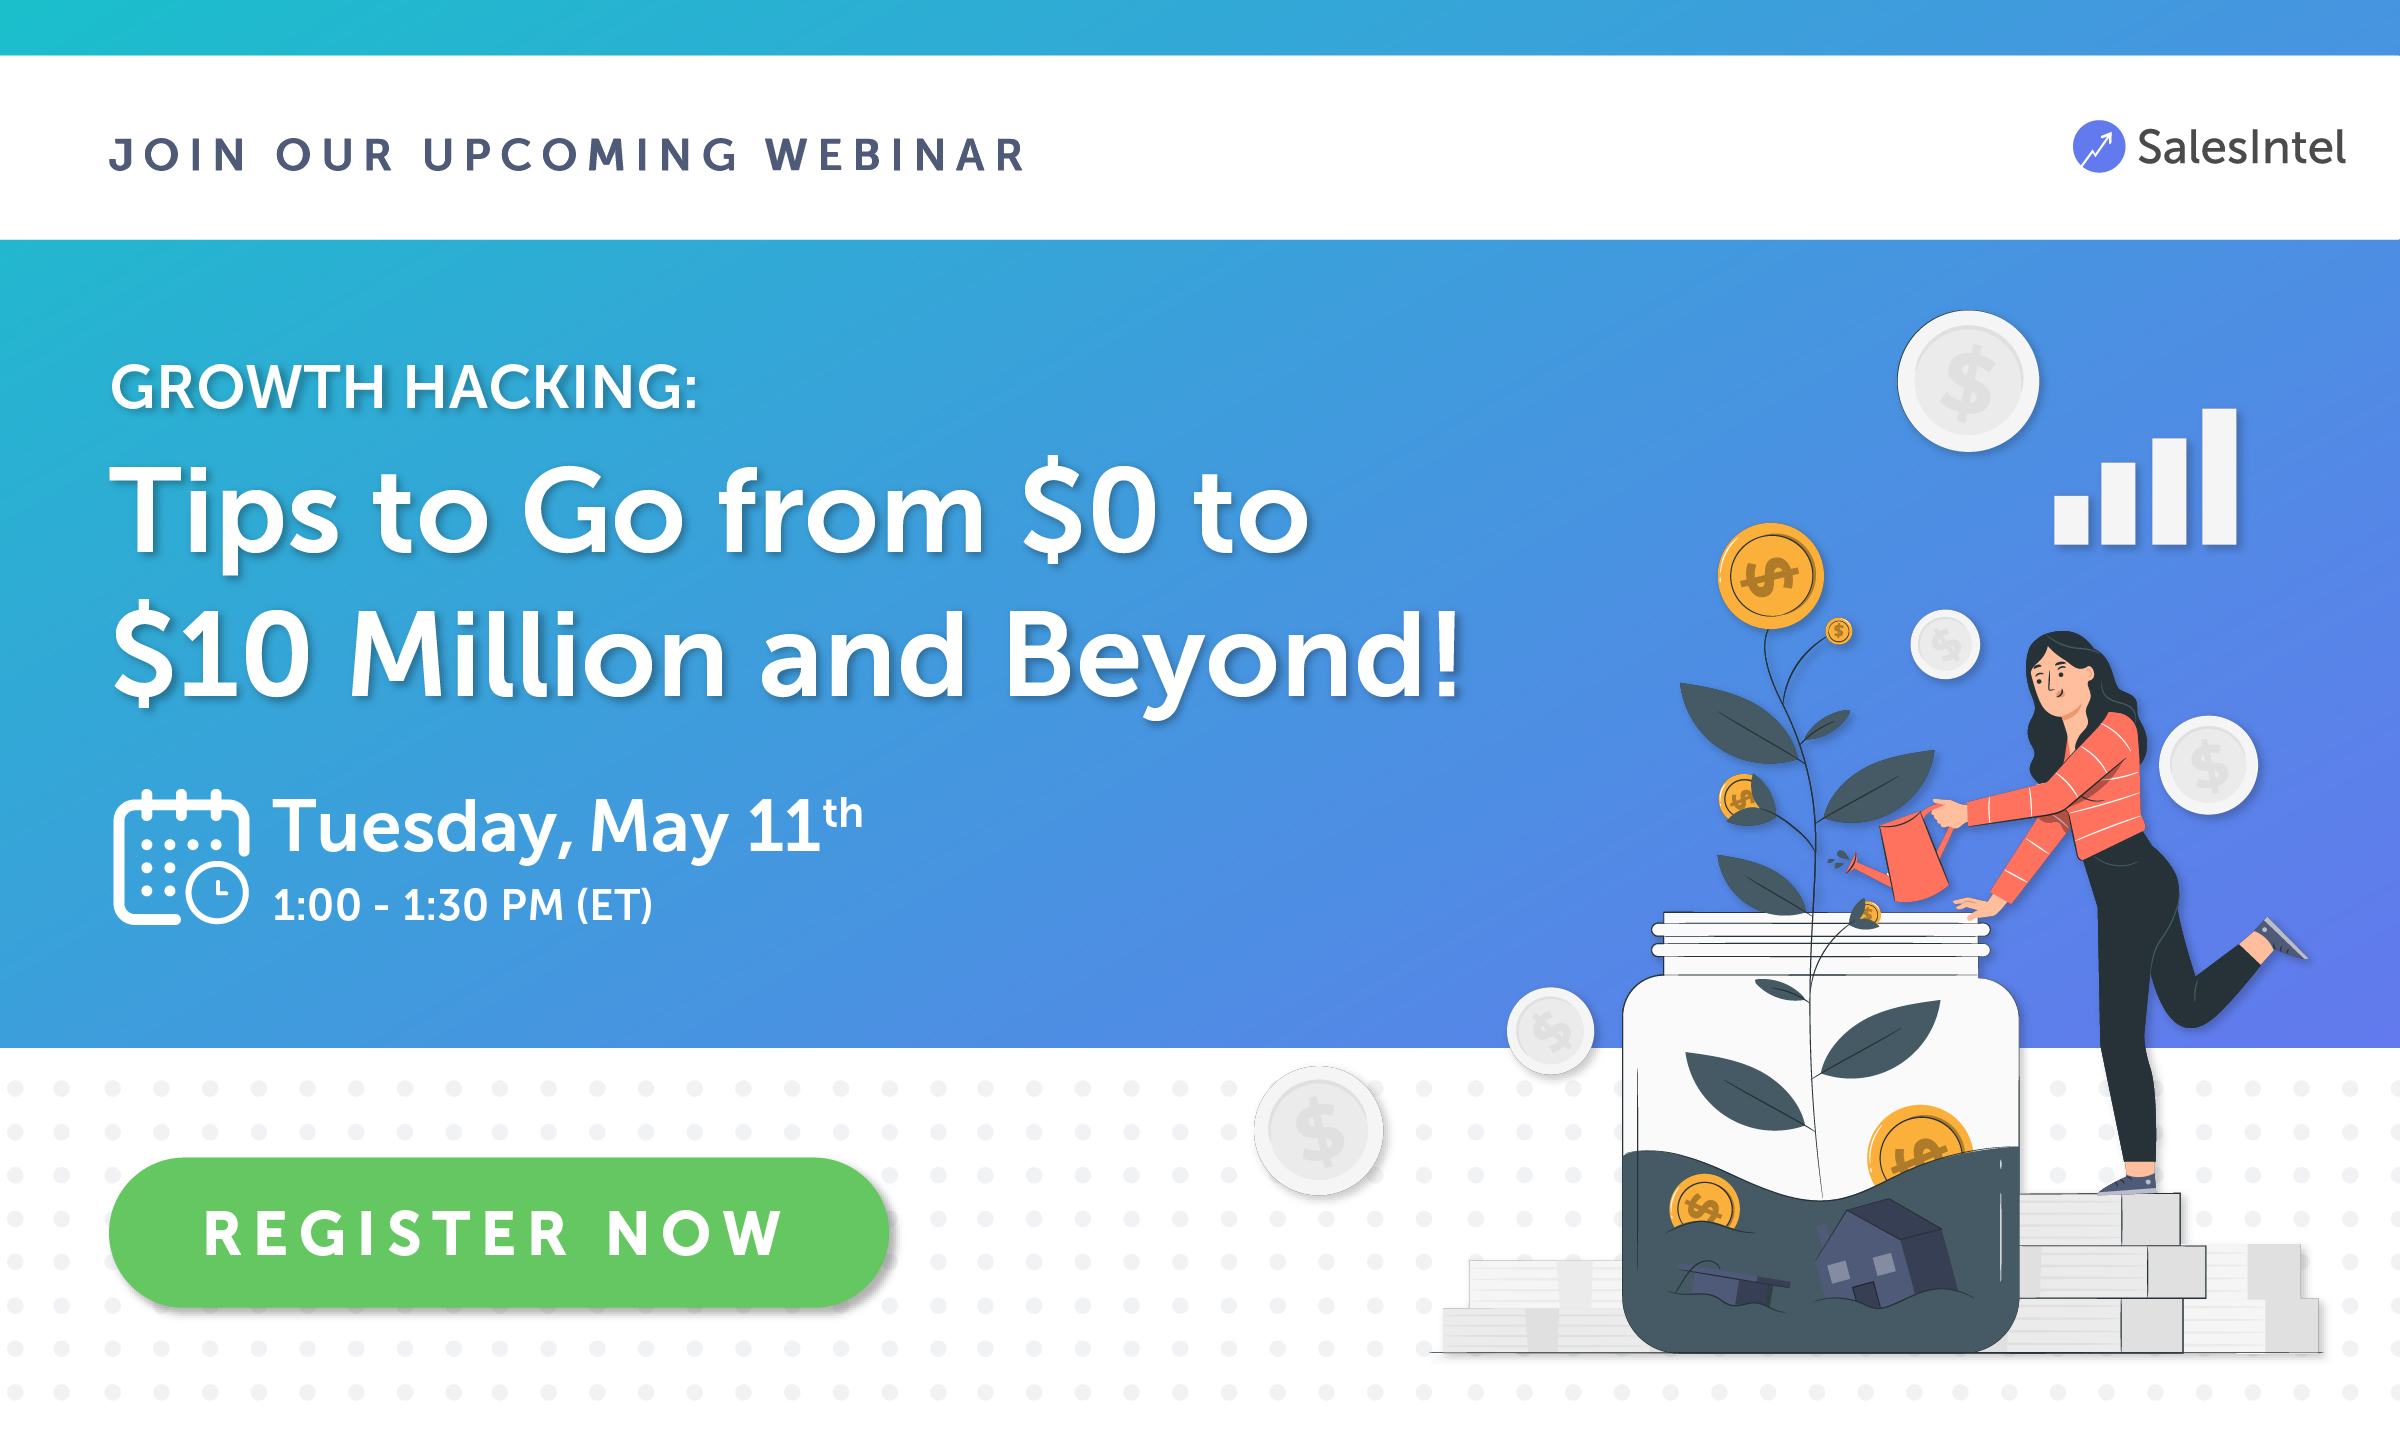 Growth Hacking: Tips to Go from $0 to $10 Million and Beyond!